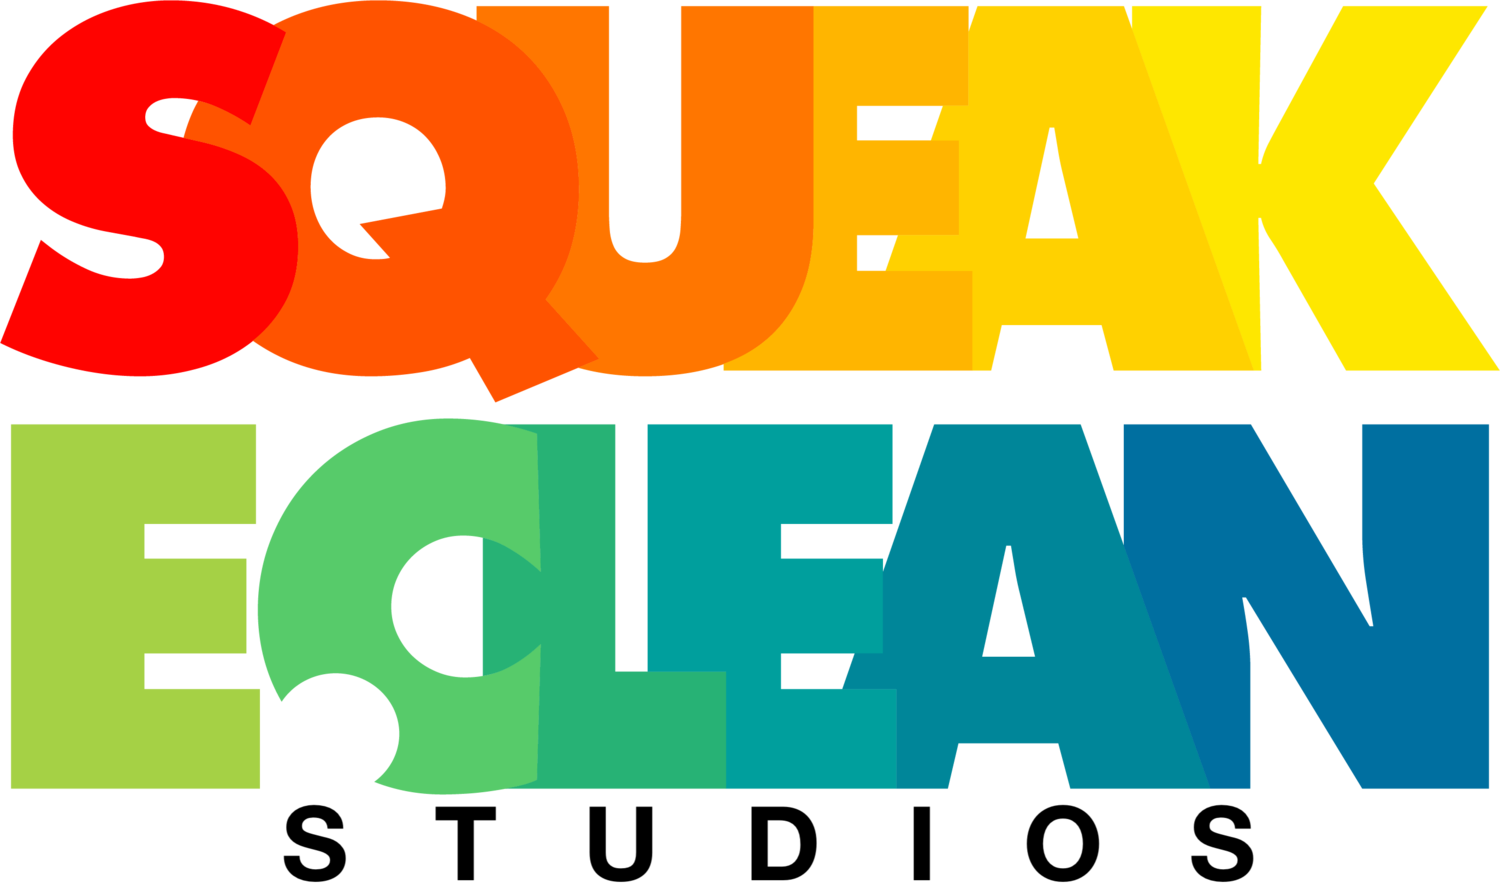 Squeak E  Clean Studios - Squeak E  Clean Studios: Experiential + Events